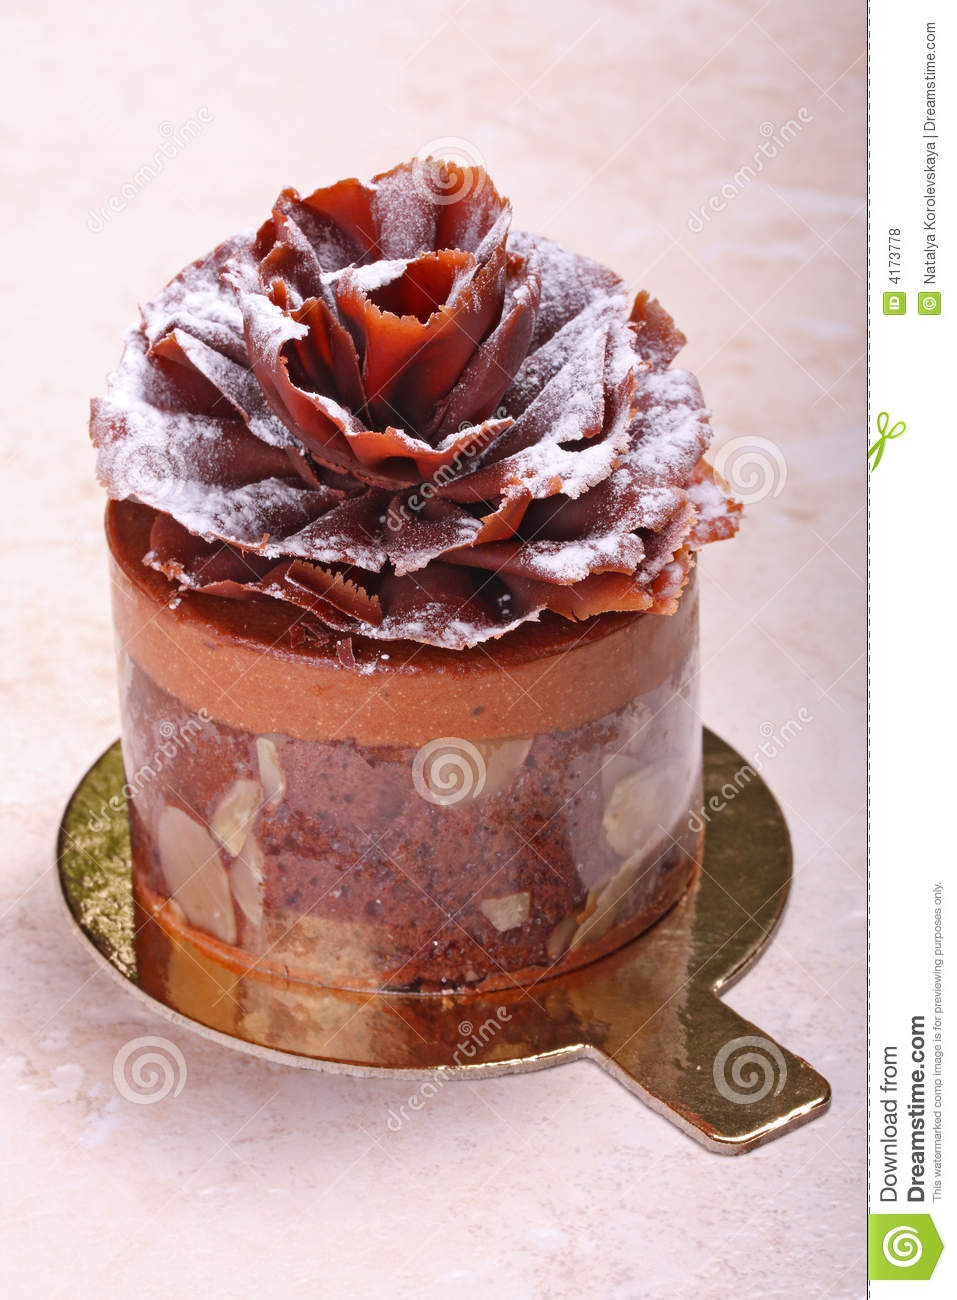 Chocolate Pastry Cake Images : Chocolate Pastry Royalty Free Stock Photos - Image: 4173778